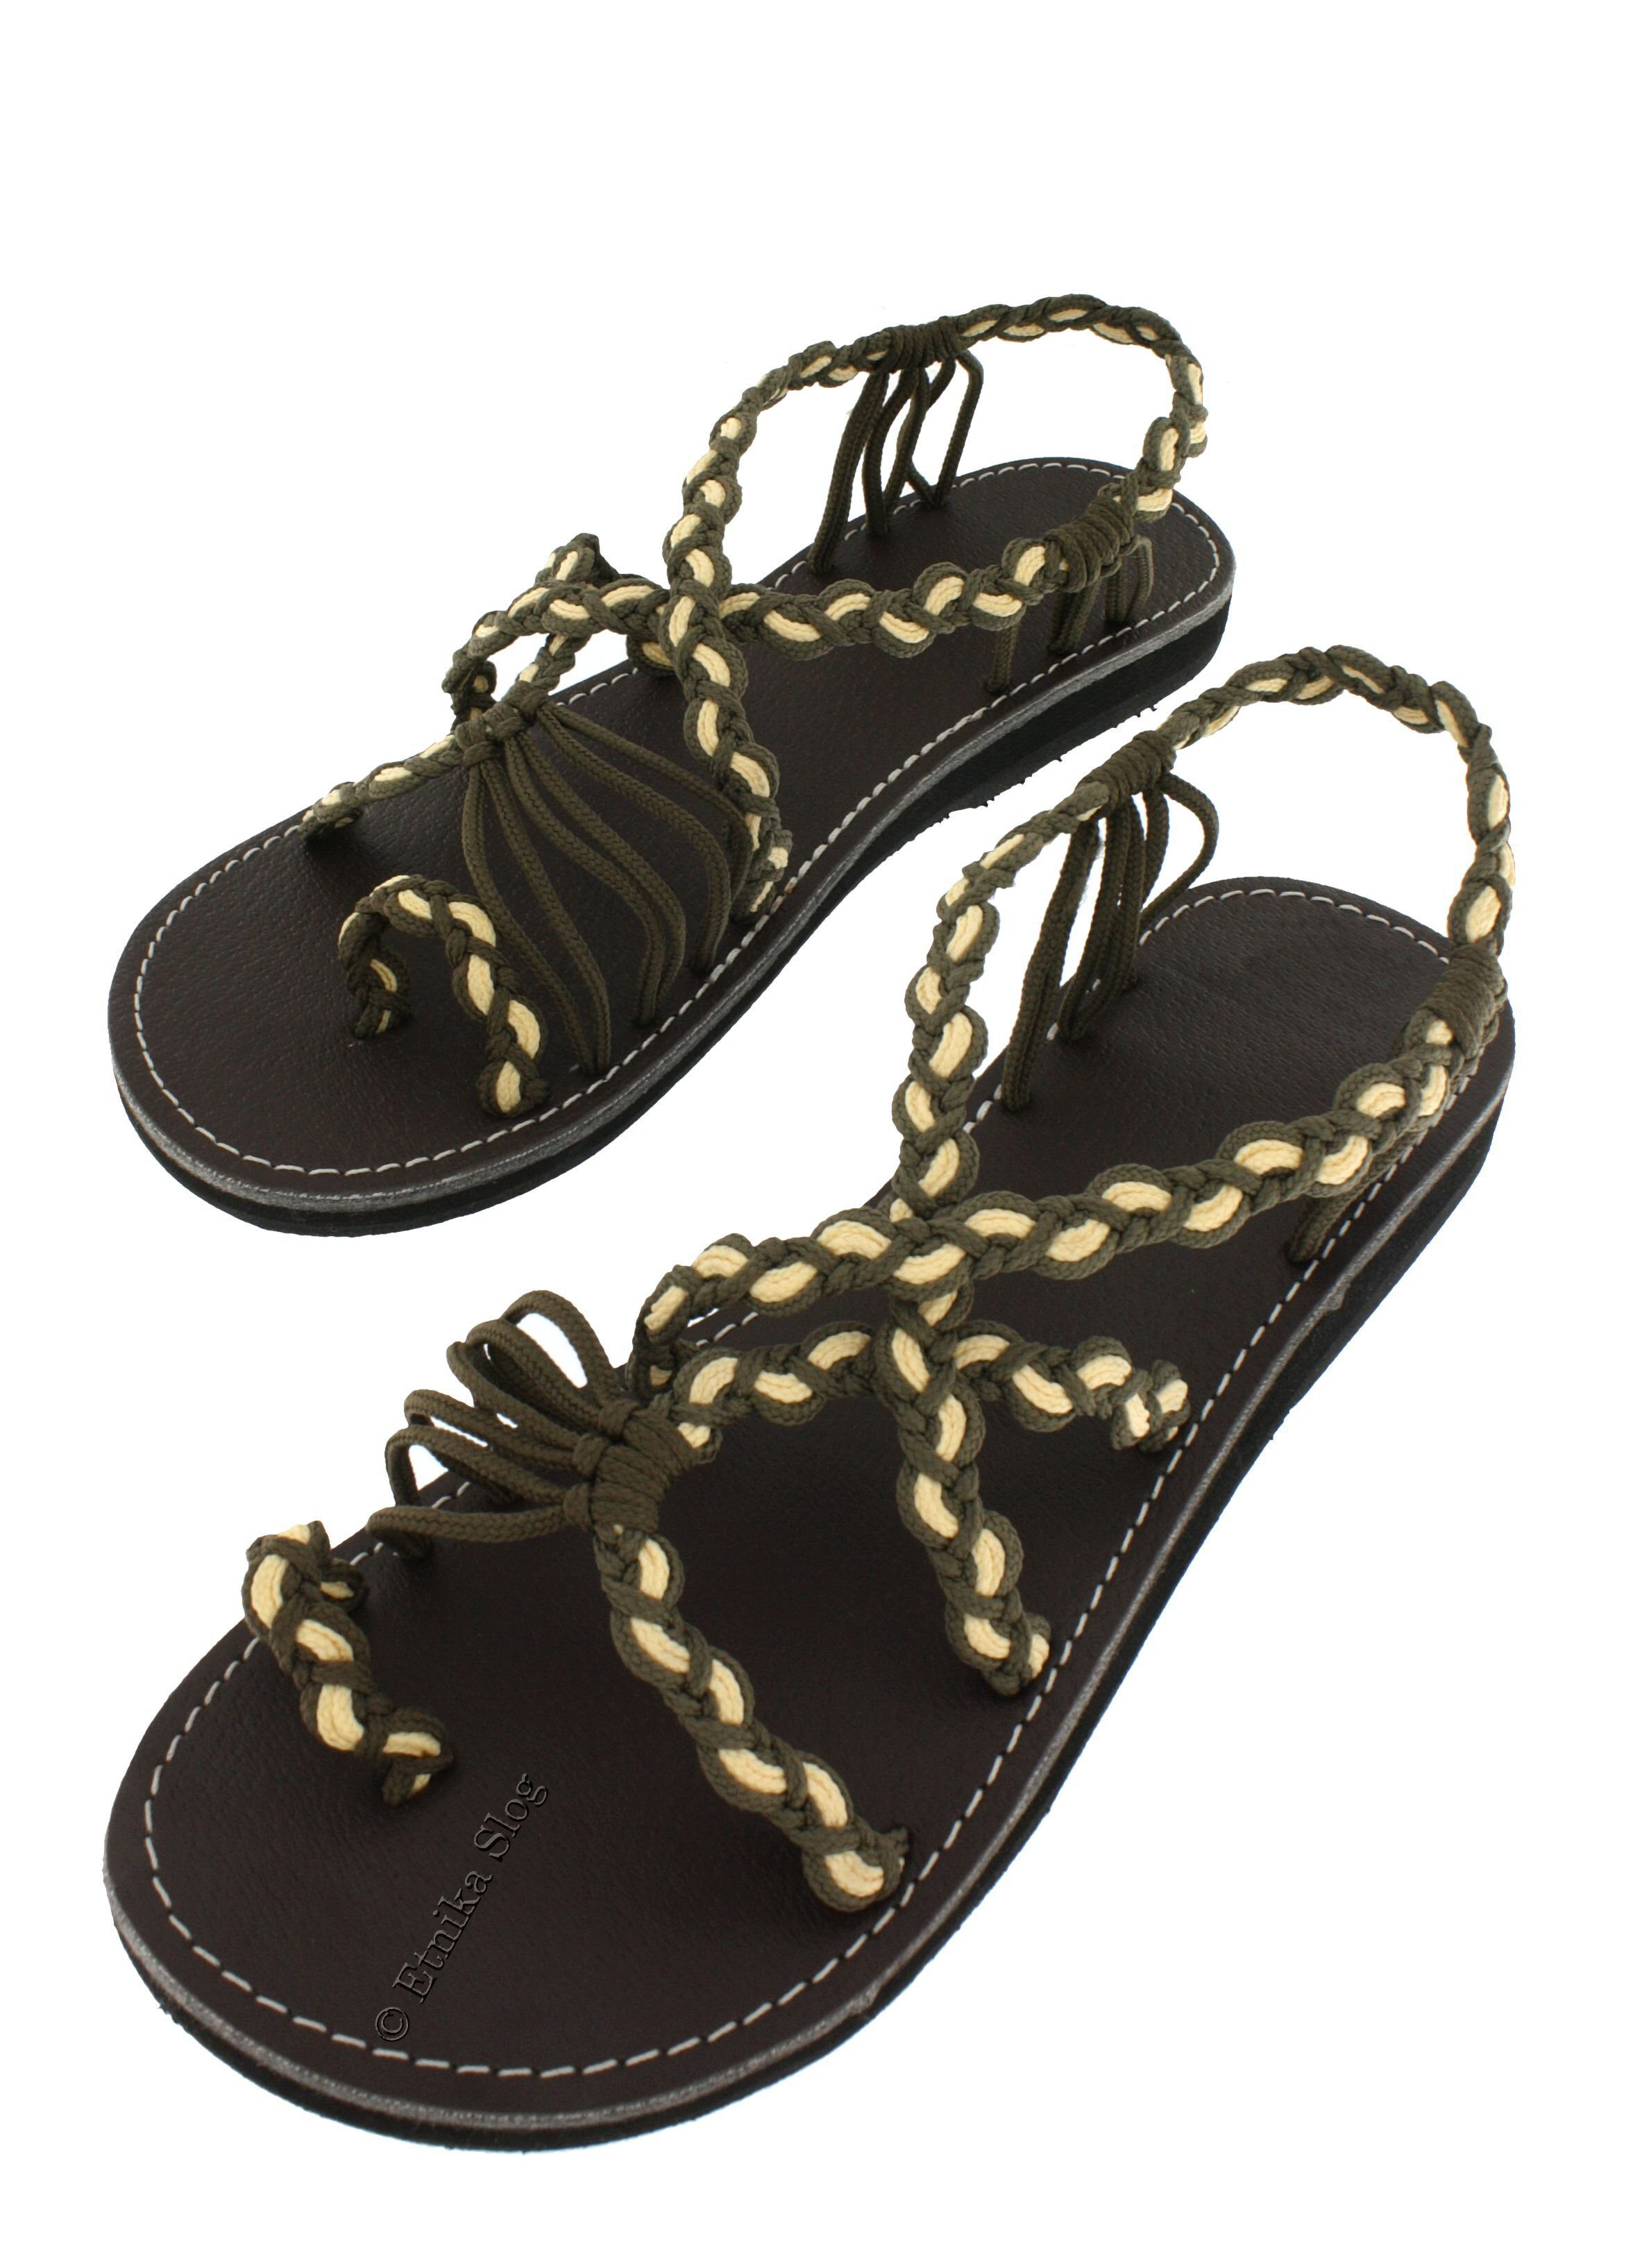 SANDALS IN LEATHER SN-AP05-VMB - Etnika Slog d.o.o.